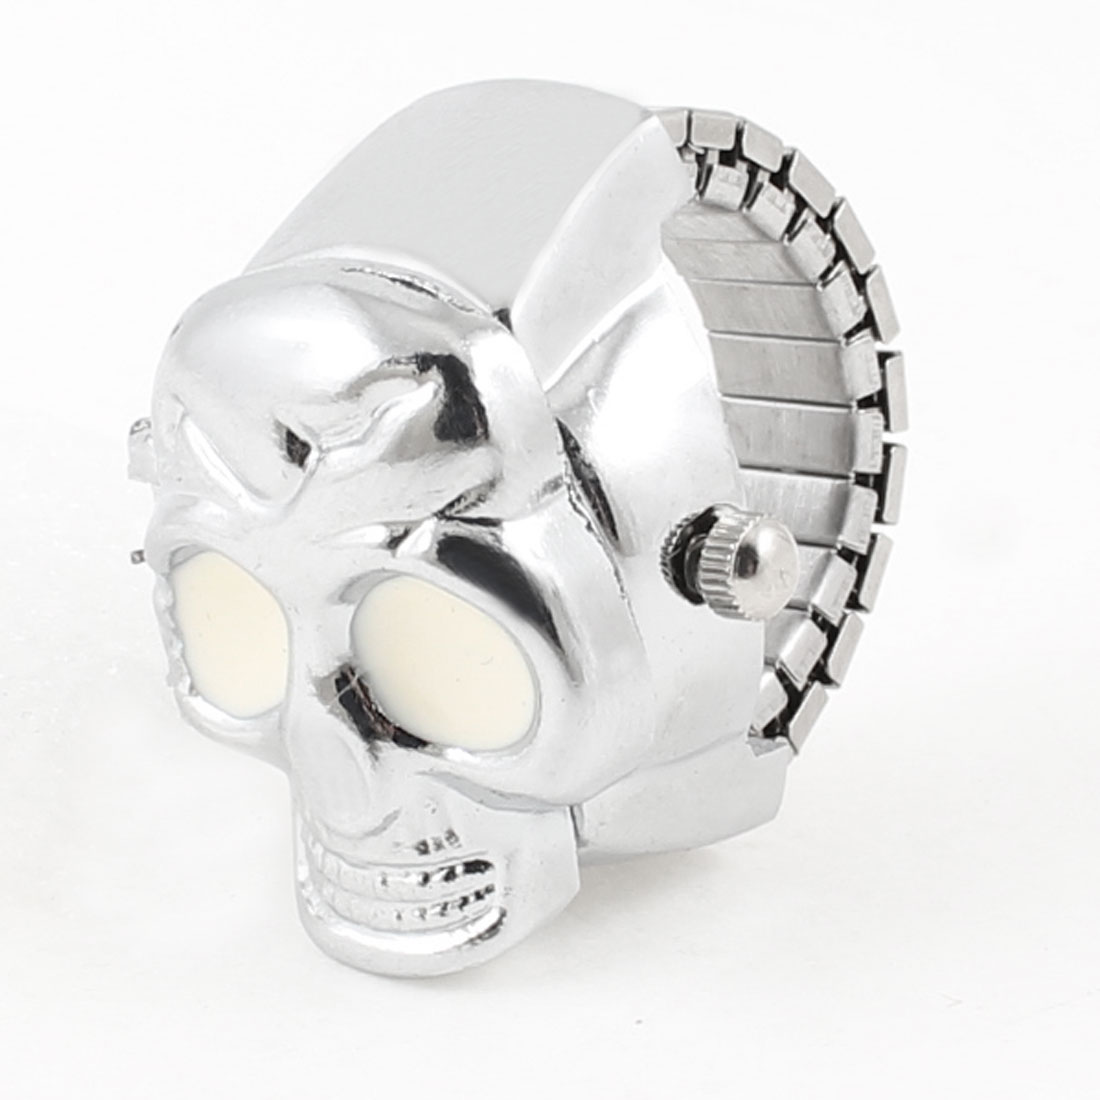 Skull Designed Finger Ring Watch US 4 3/4 White Silver Tone for Adults